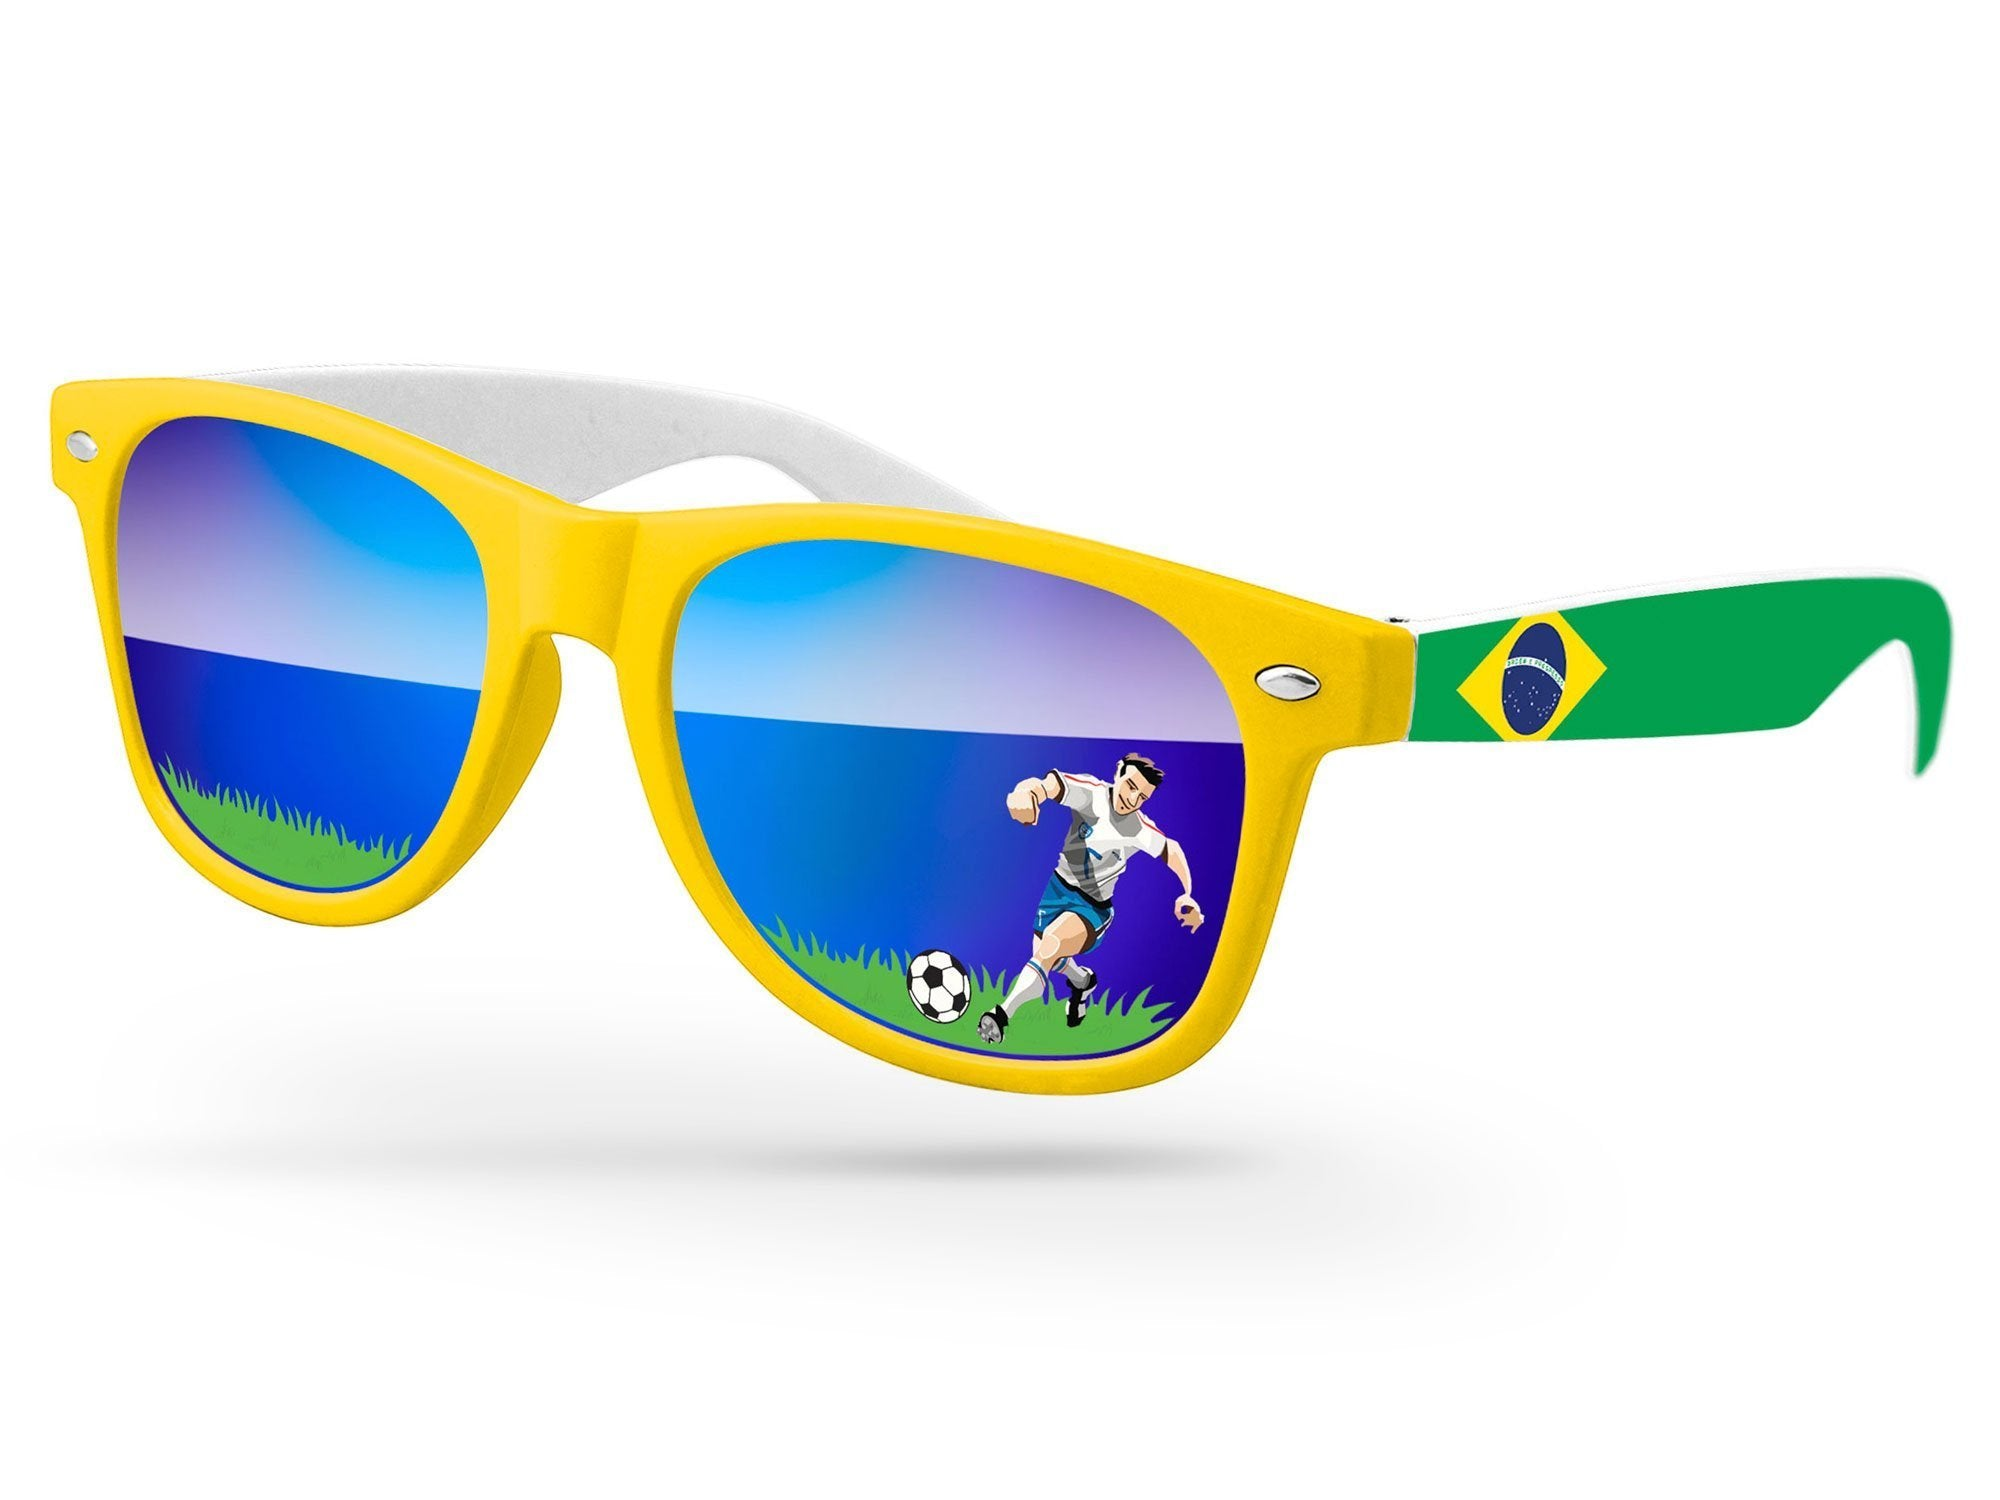 RM452 - 2-Tone Retro Promotional Sunglasses w/ full-color lens imprints & full-color arms heat transfer